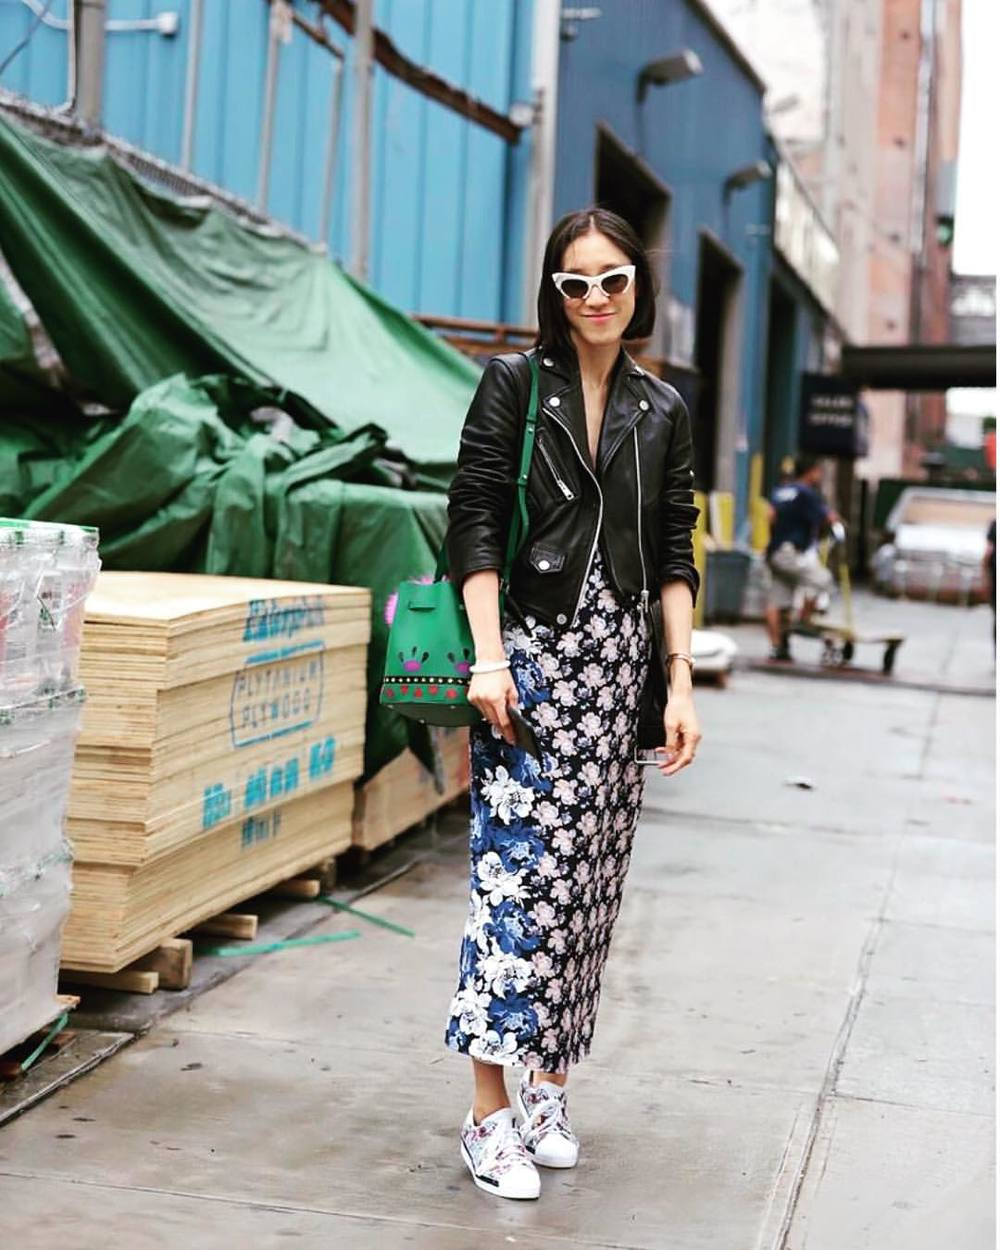 How cool is Eva Chen on the streets on New York! Get that look at 20% off, plus free shipping, when you shop online before 12am tonight! Tap for details & follow the link in our bio to shop now! Code: VOSN20 #VogueOnlineShoppingNight